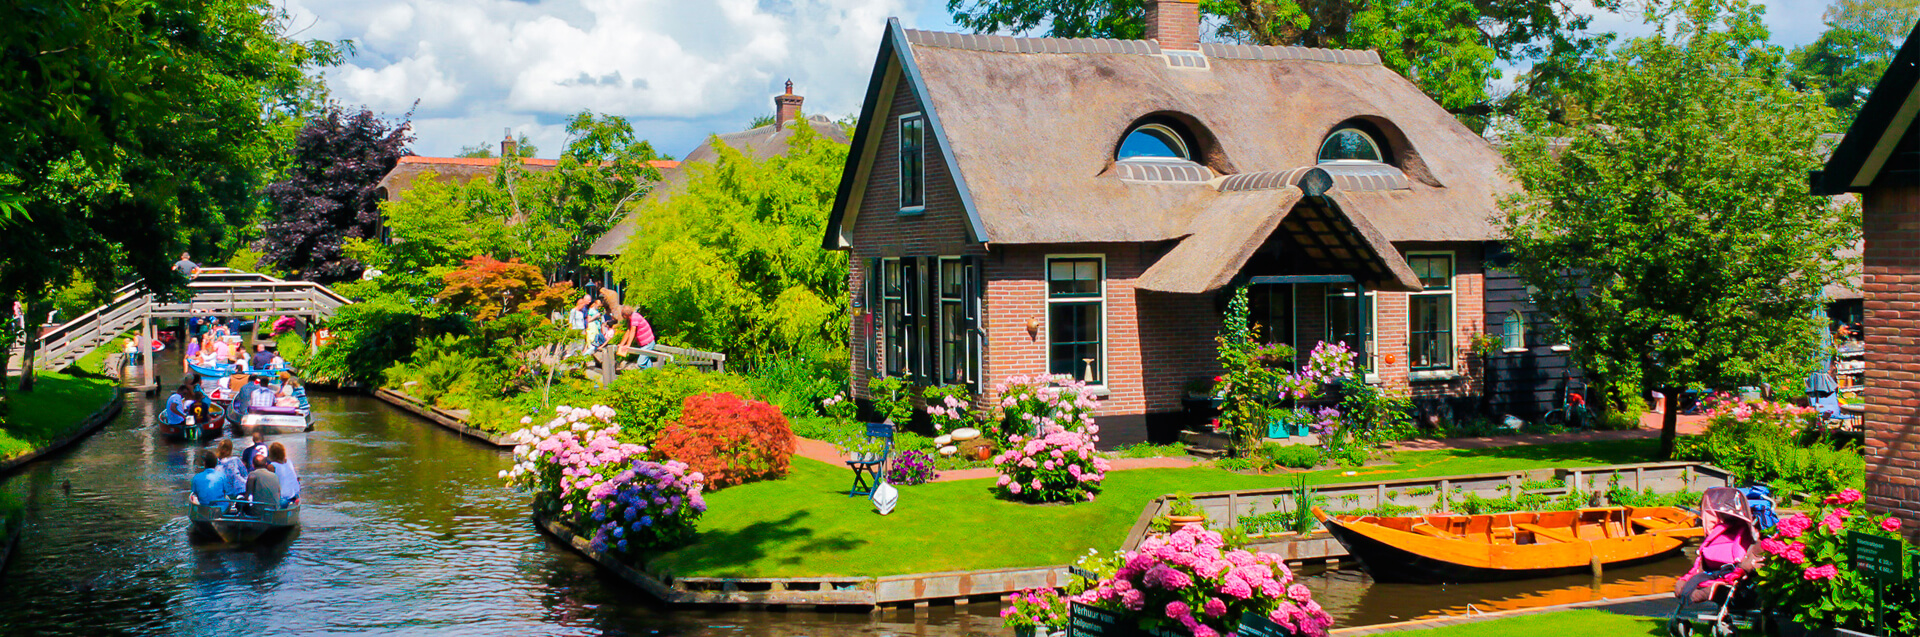 Giethoorn by boat discover holland for Home pictures images